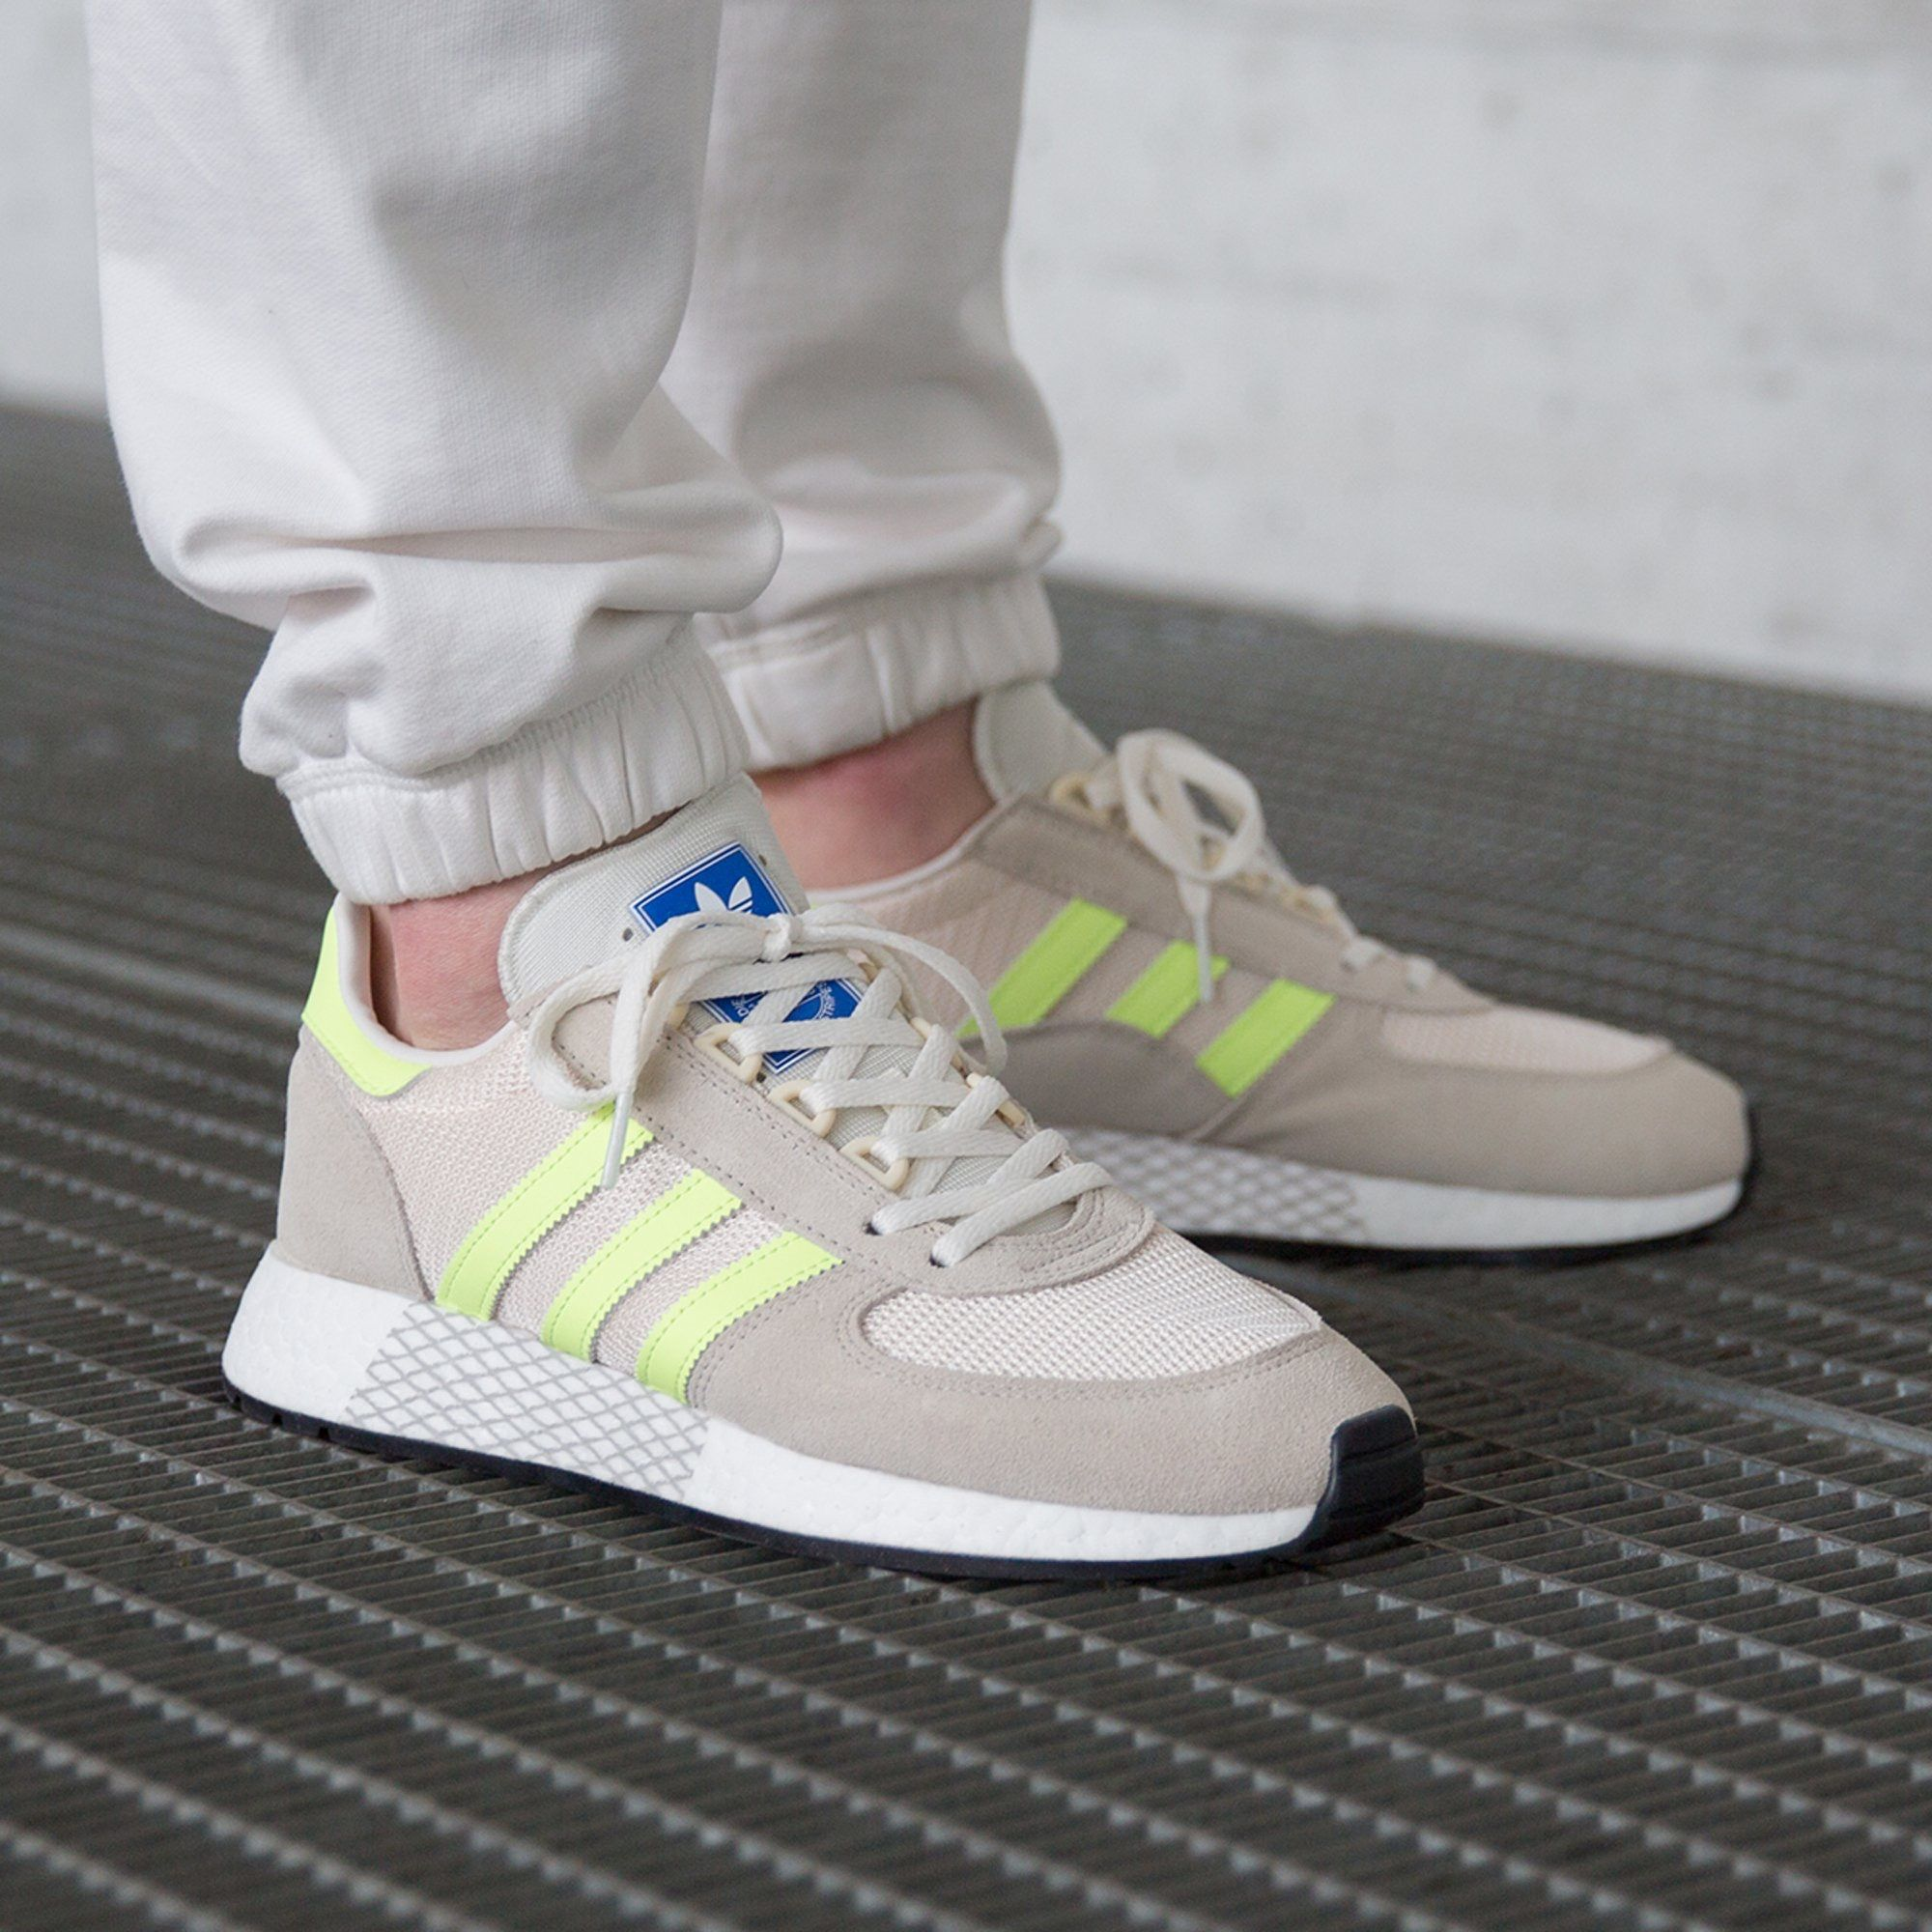 adidas Originals Marathon Tech | Adidas sneakers, Adidas ...